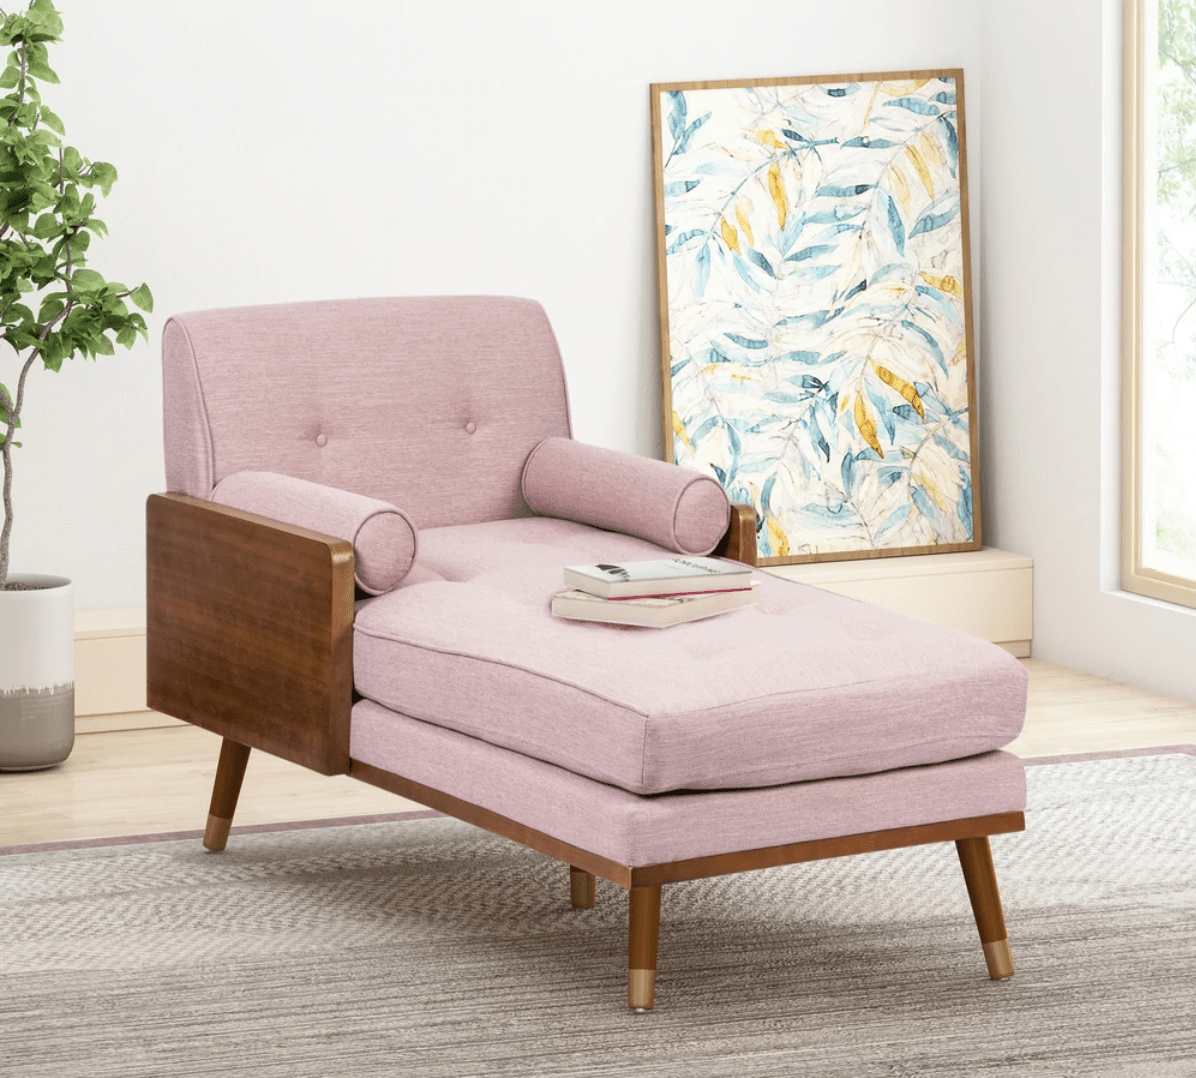 9 modern chaise lounges for 2021 best